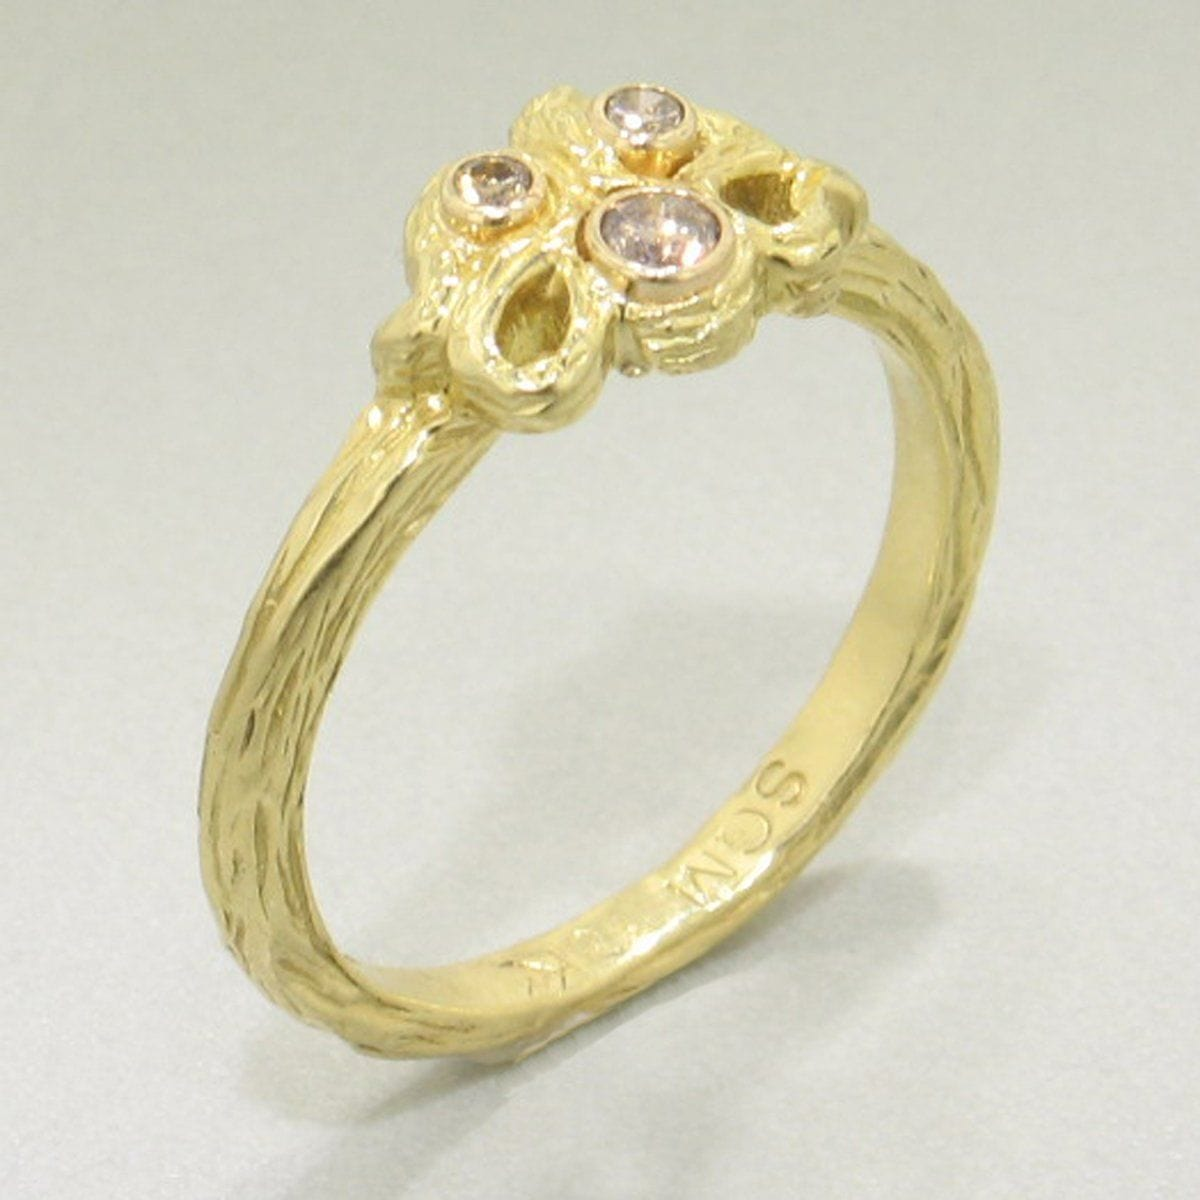 Shadow Five Loop Stacking Gold & Diamond Ring - 40R8-5-3G-YG